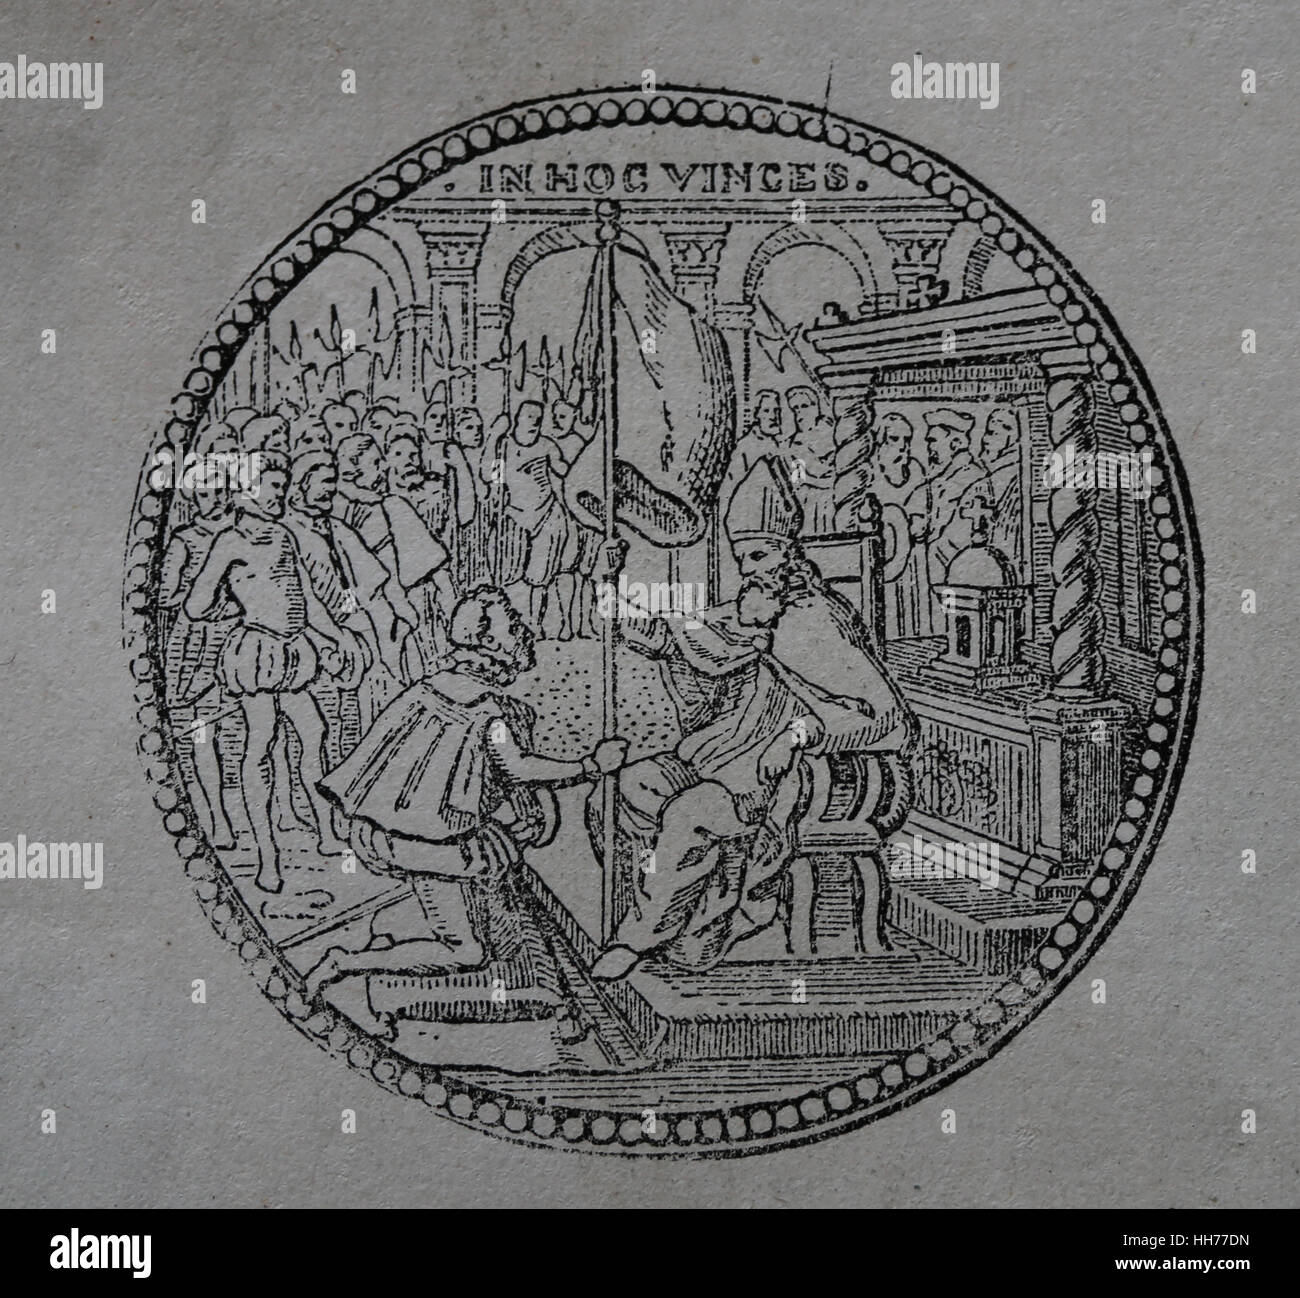 Medallion commemorating the delivery of the flag of the Holy League. Pope Pius V (1504-1572). Engraving, 1882. - Stock Image